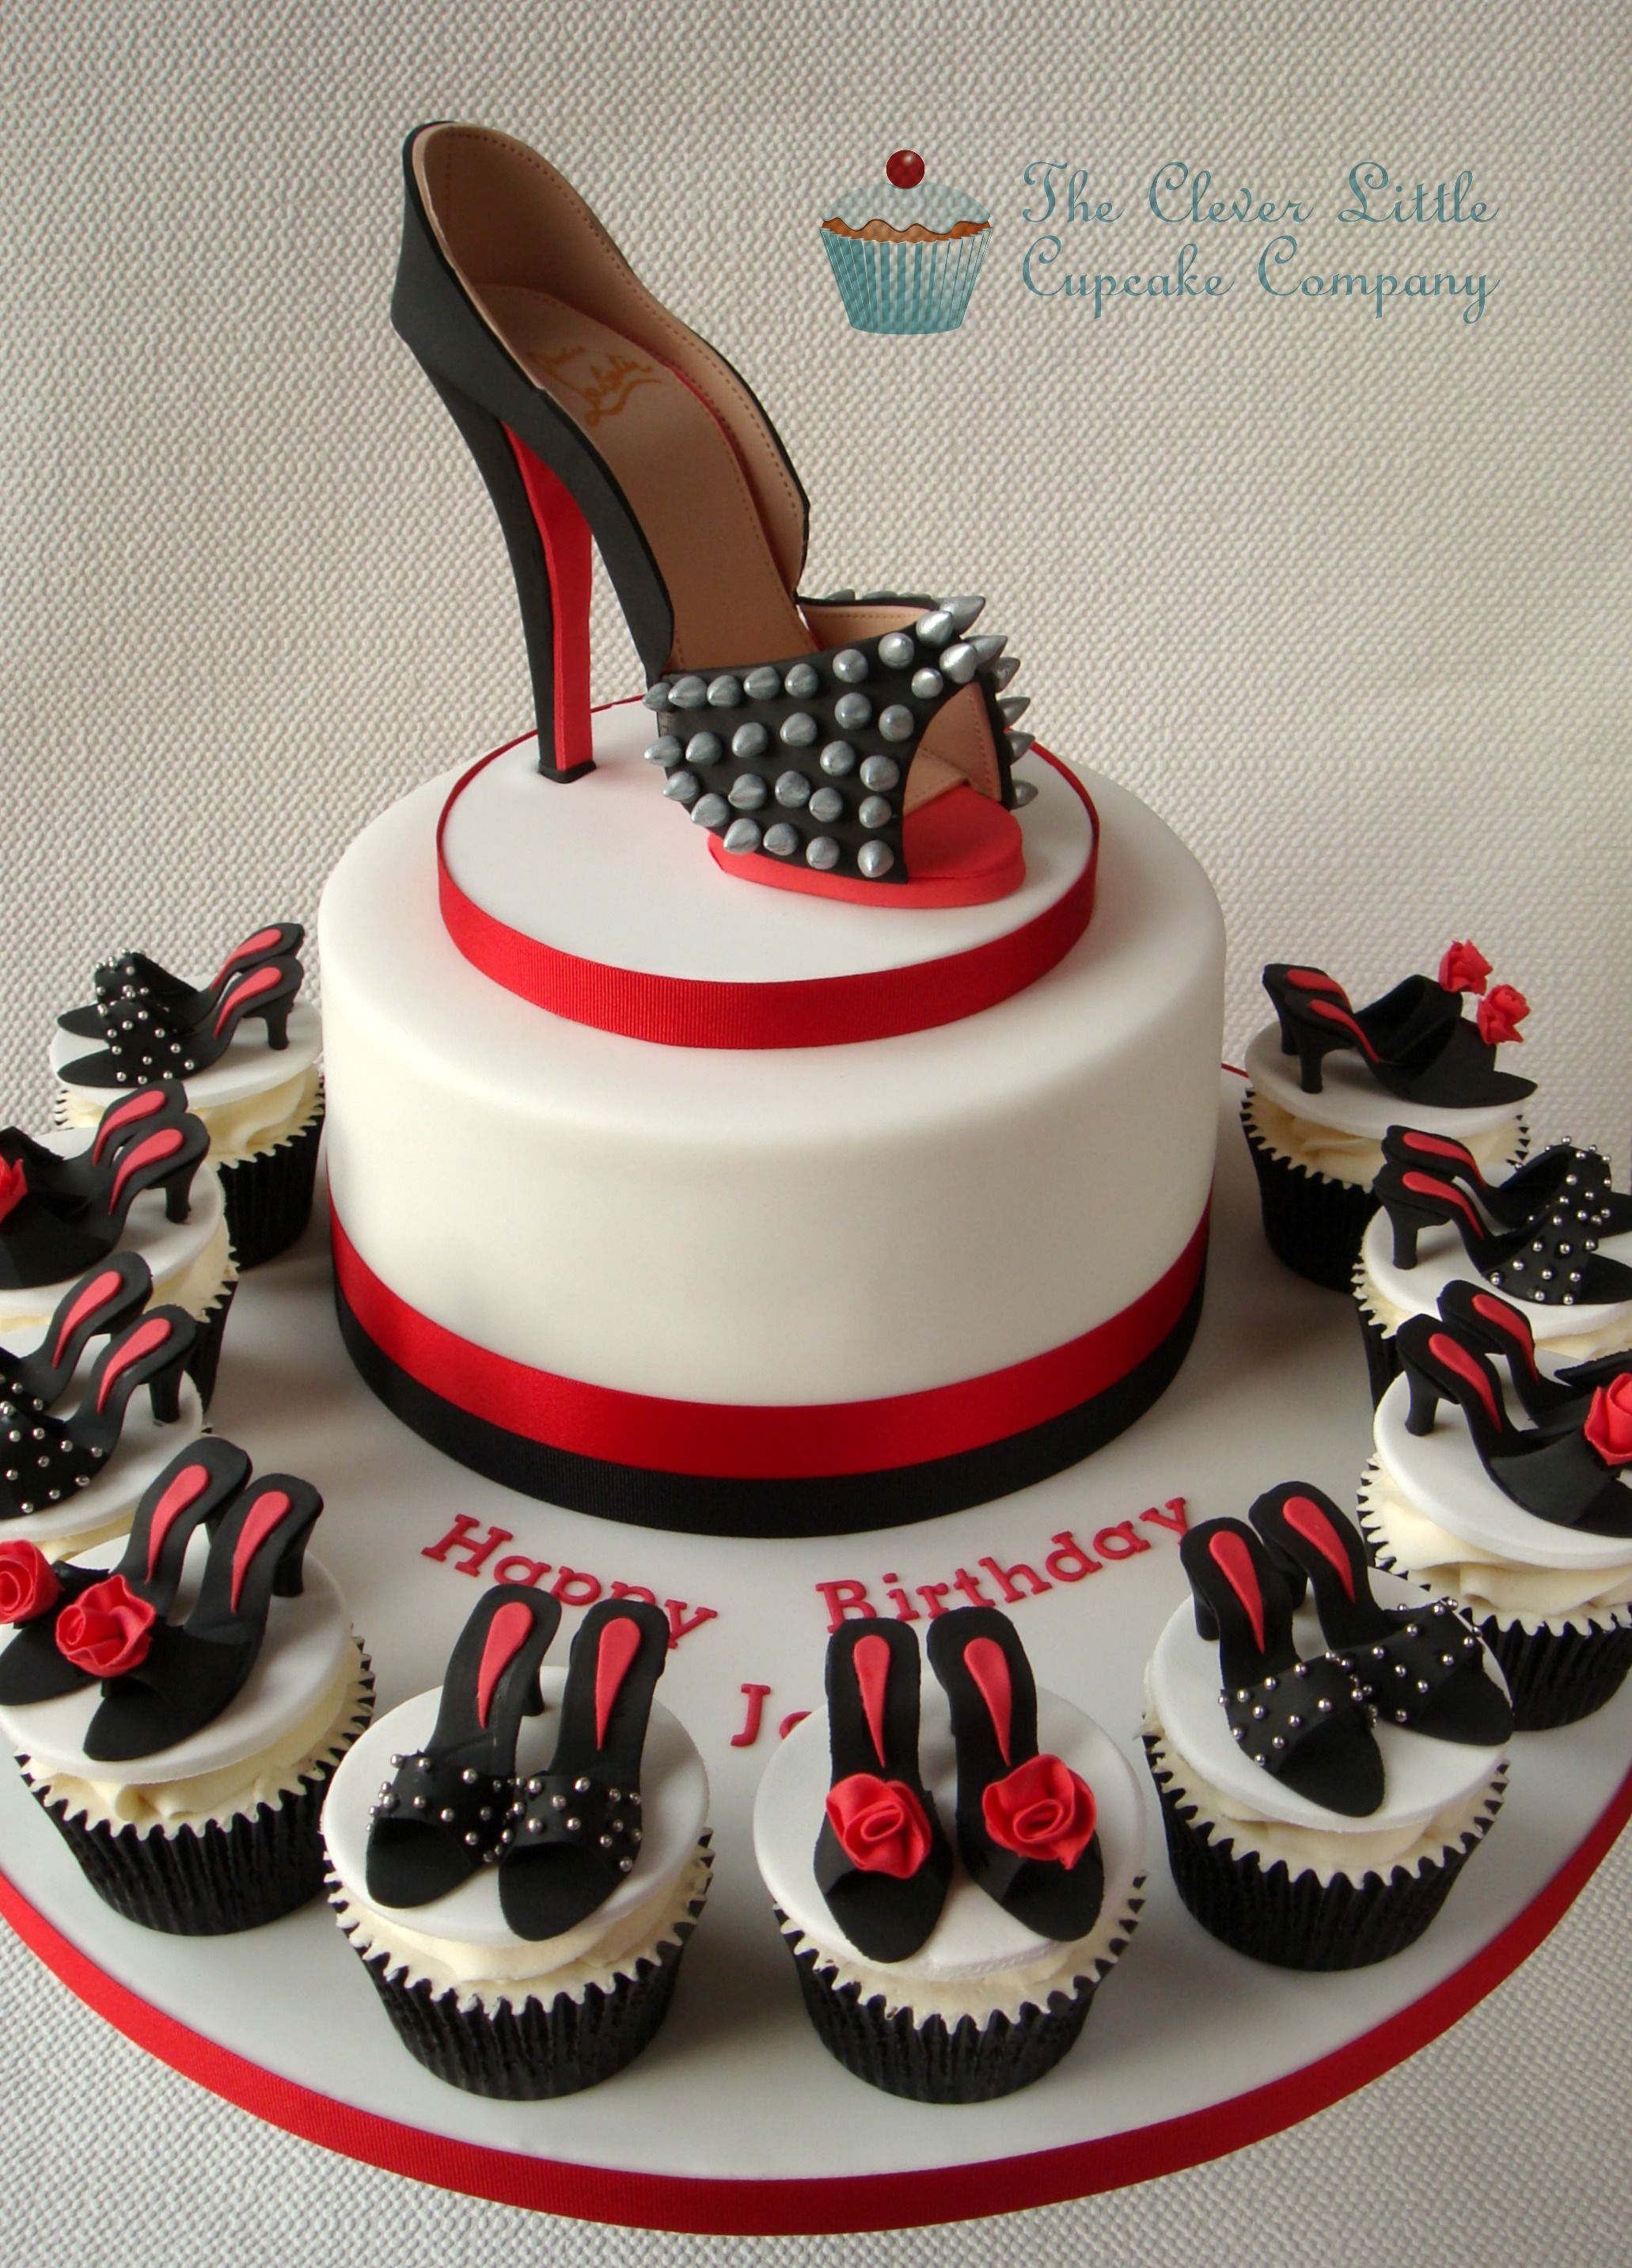 Louboutin Shoe Cake Cake Birthday cakes and Shoe cupcakes